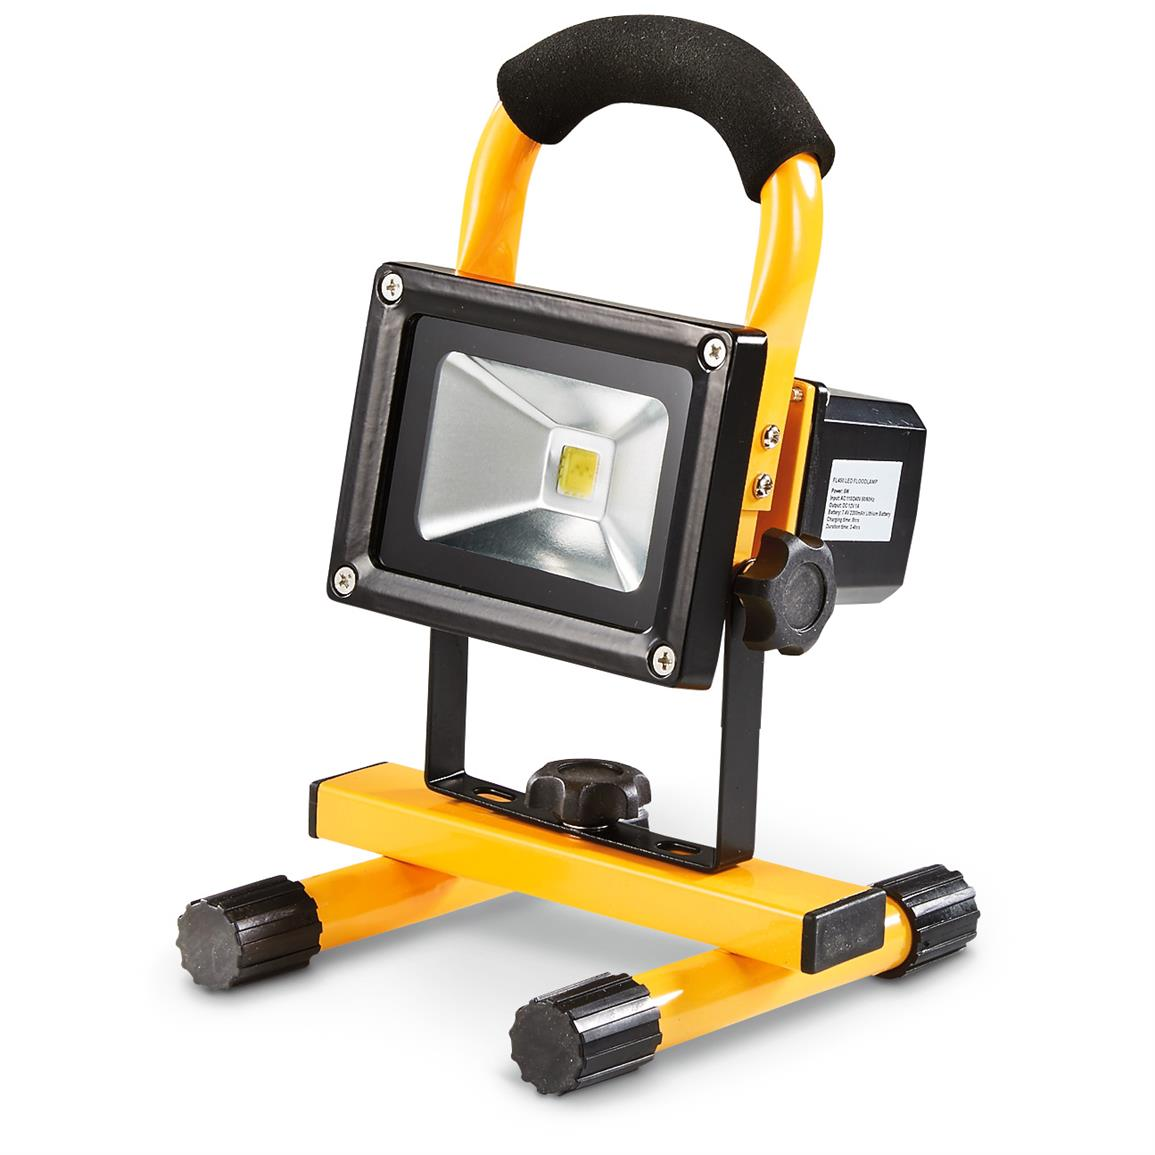 Rechargeable Waterproof Work Light, 450 Lumen